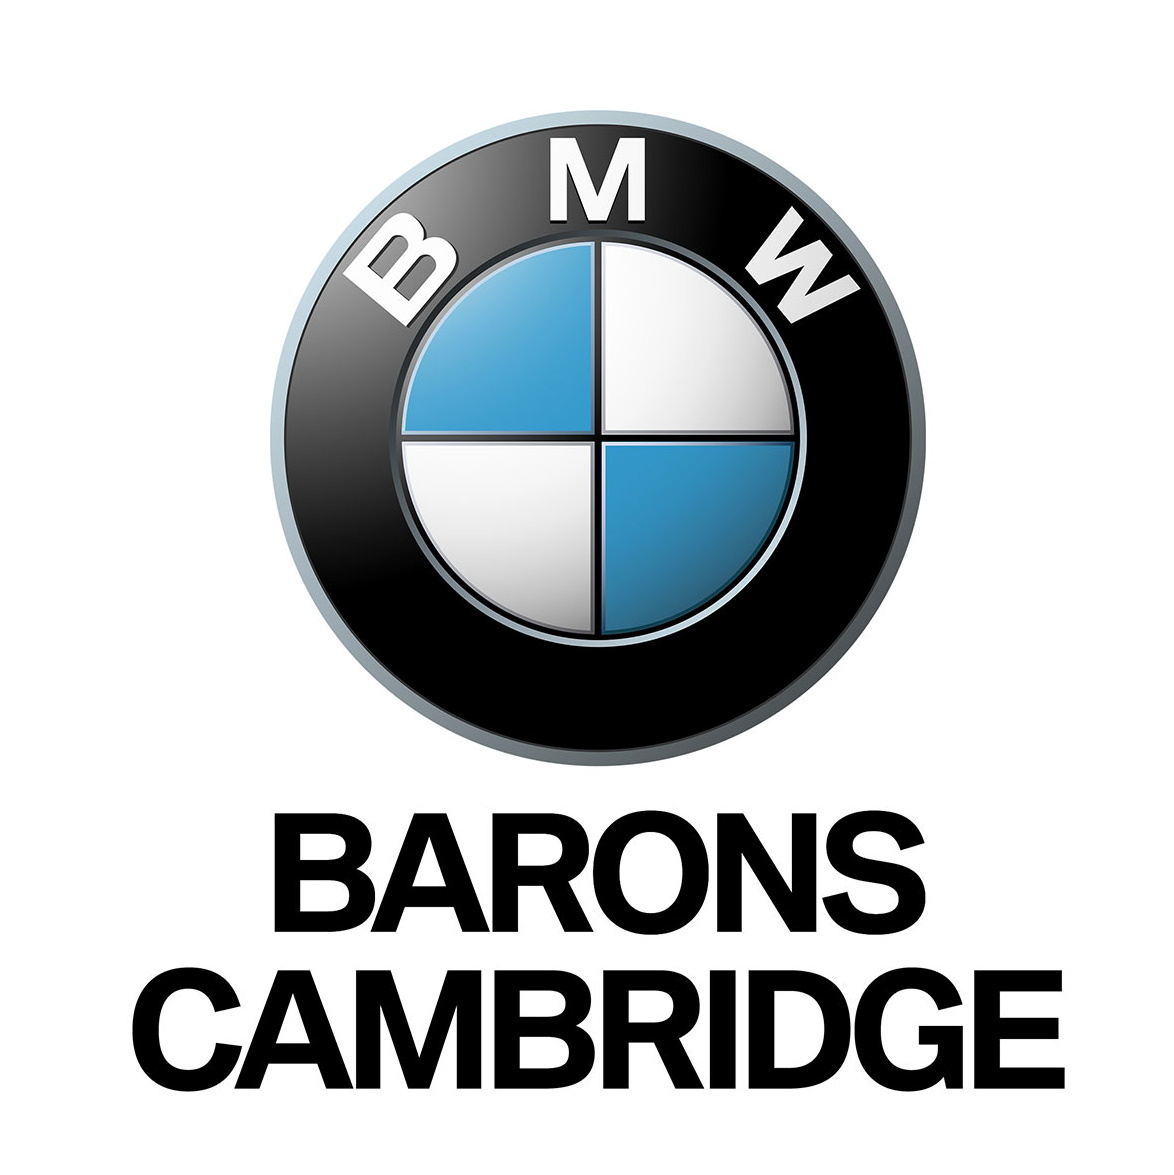 Barons Cambridge BMW